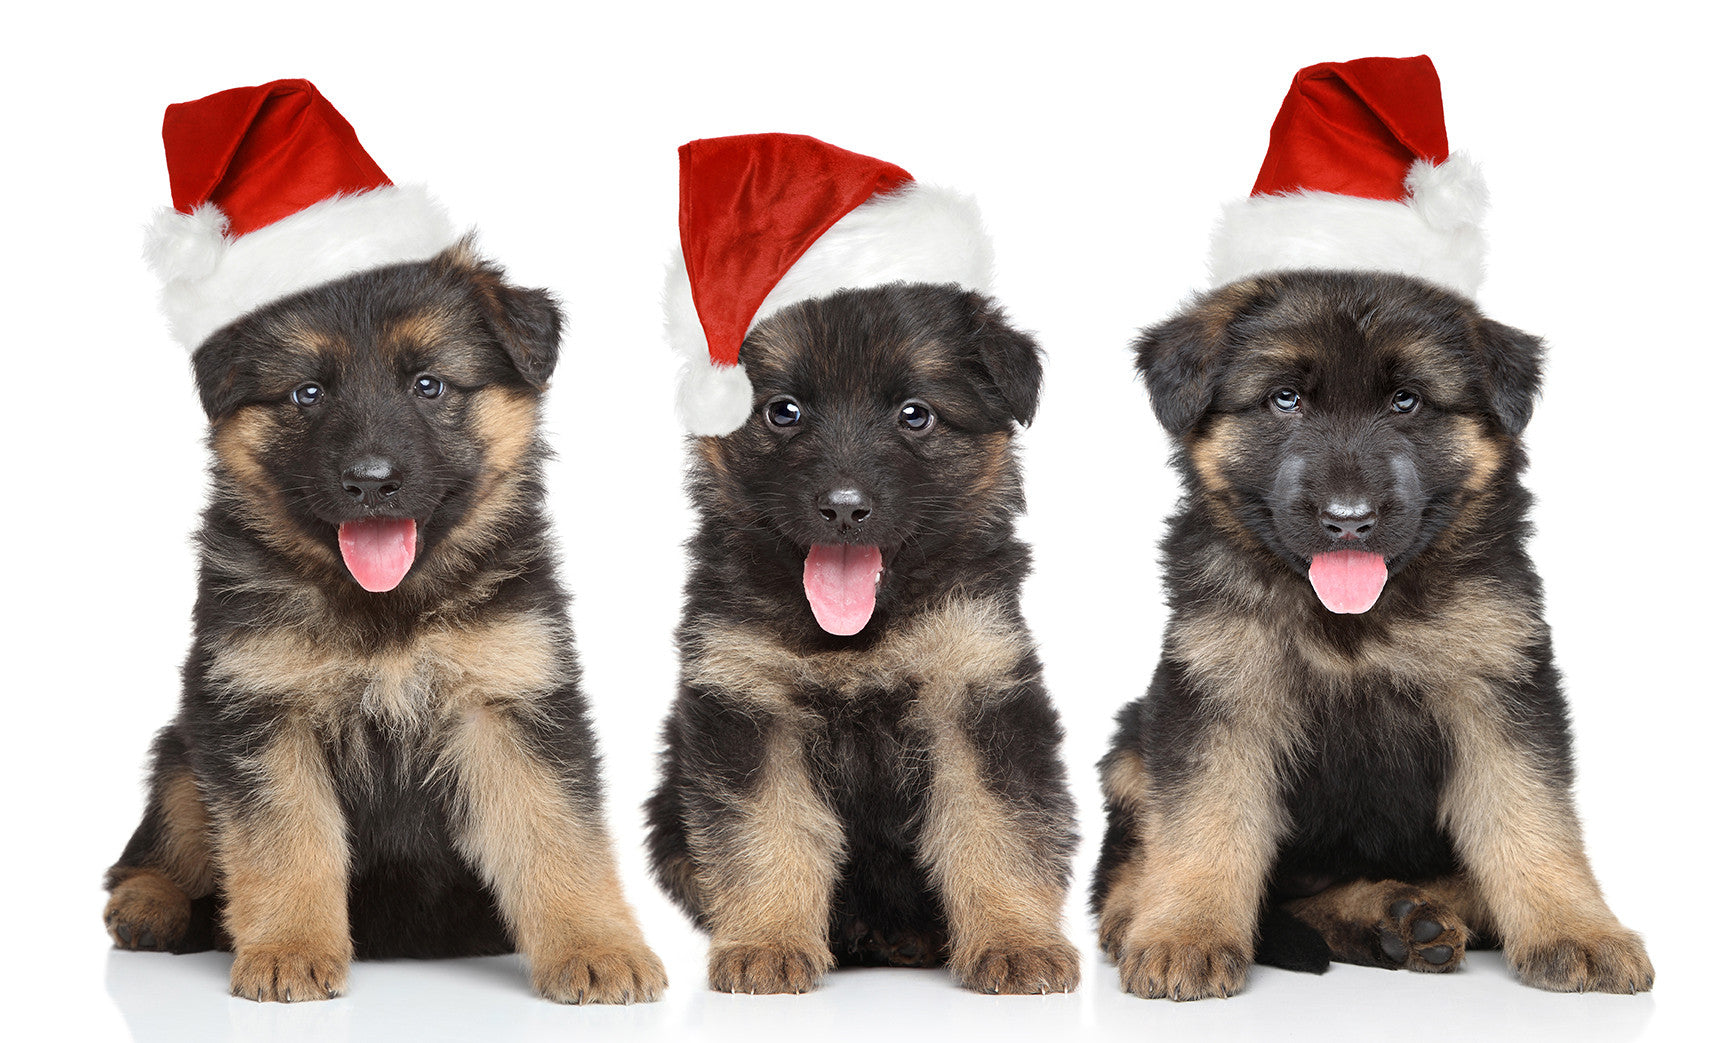 The Essential Guide to Getting a Christmas Puppy